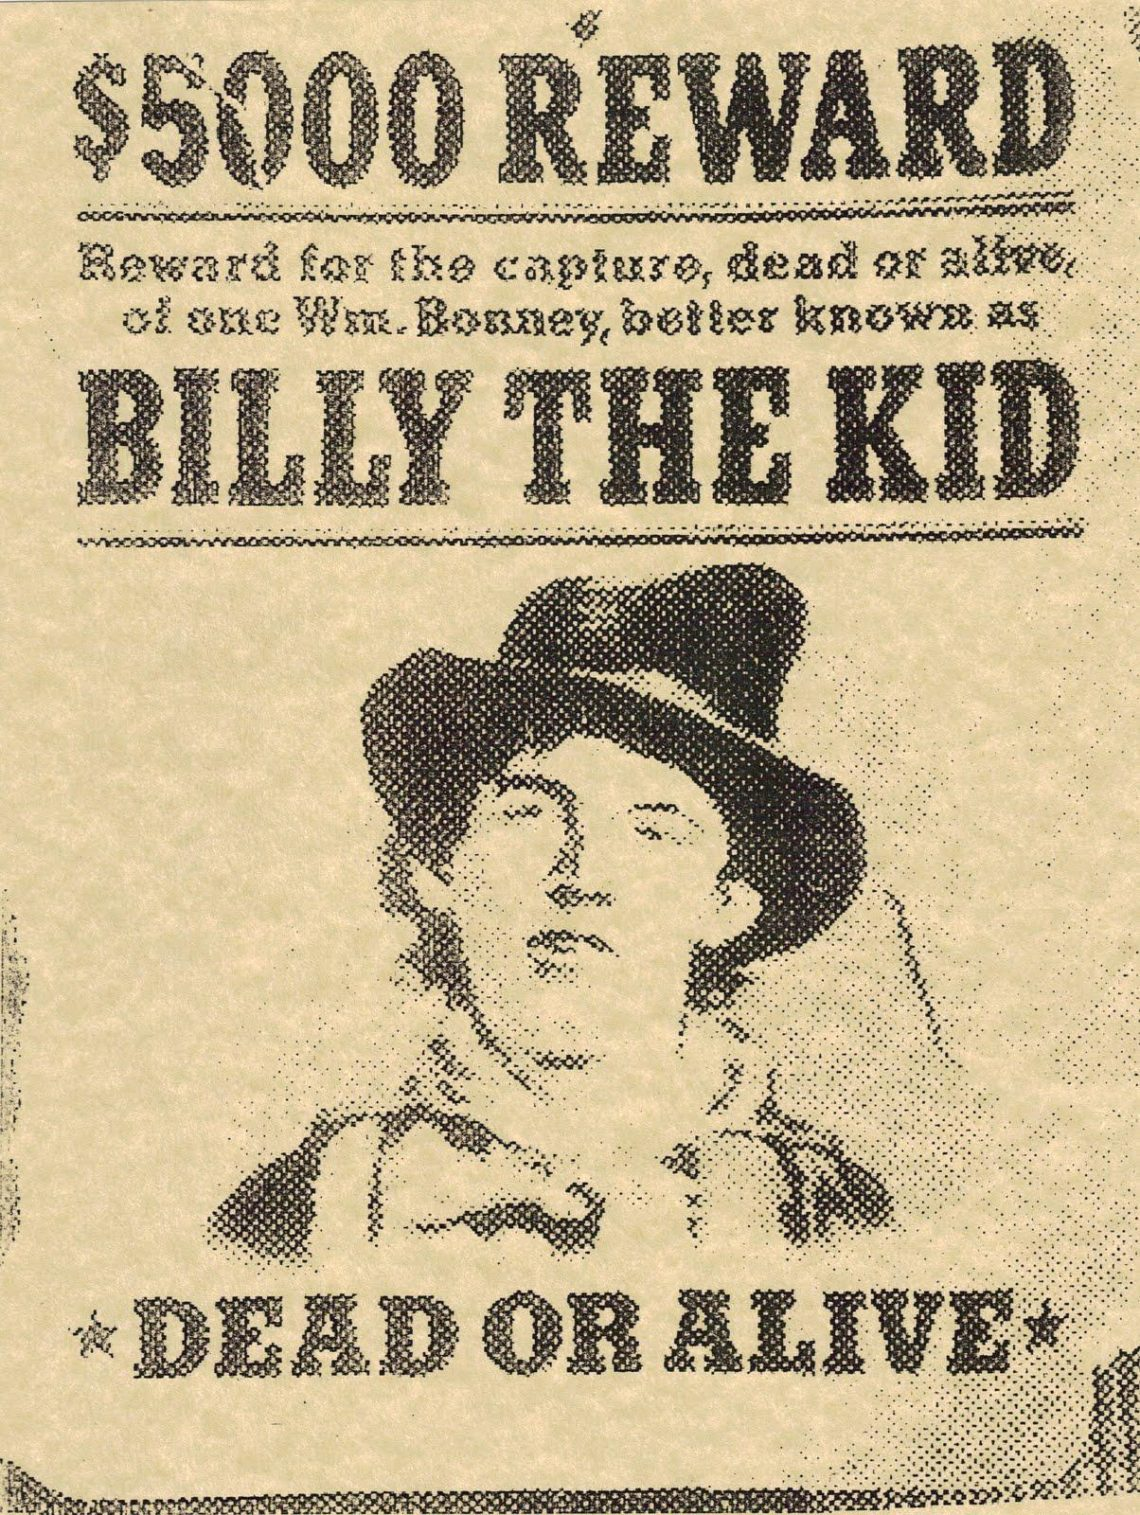 Billy the Kid - Historia